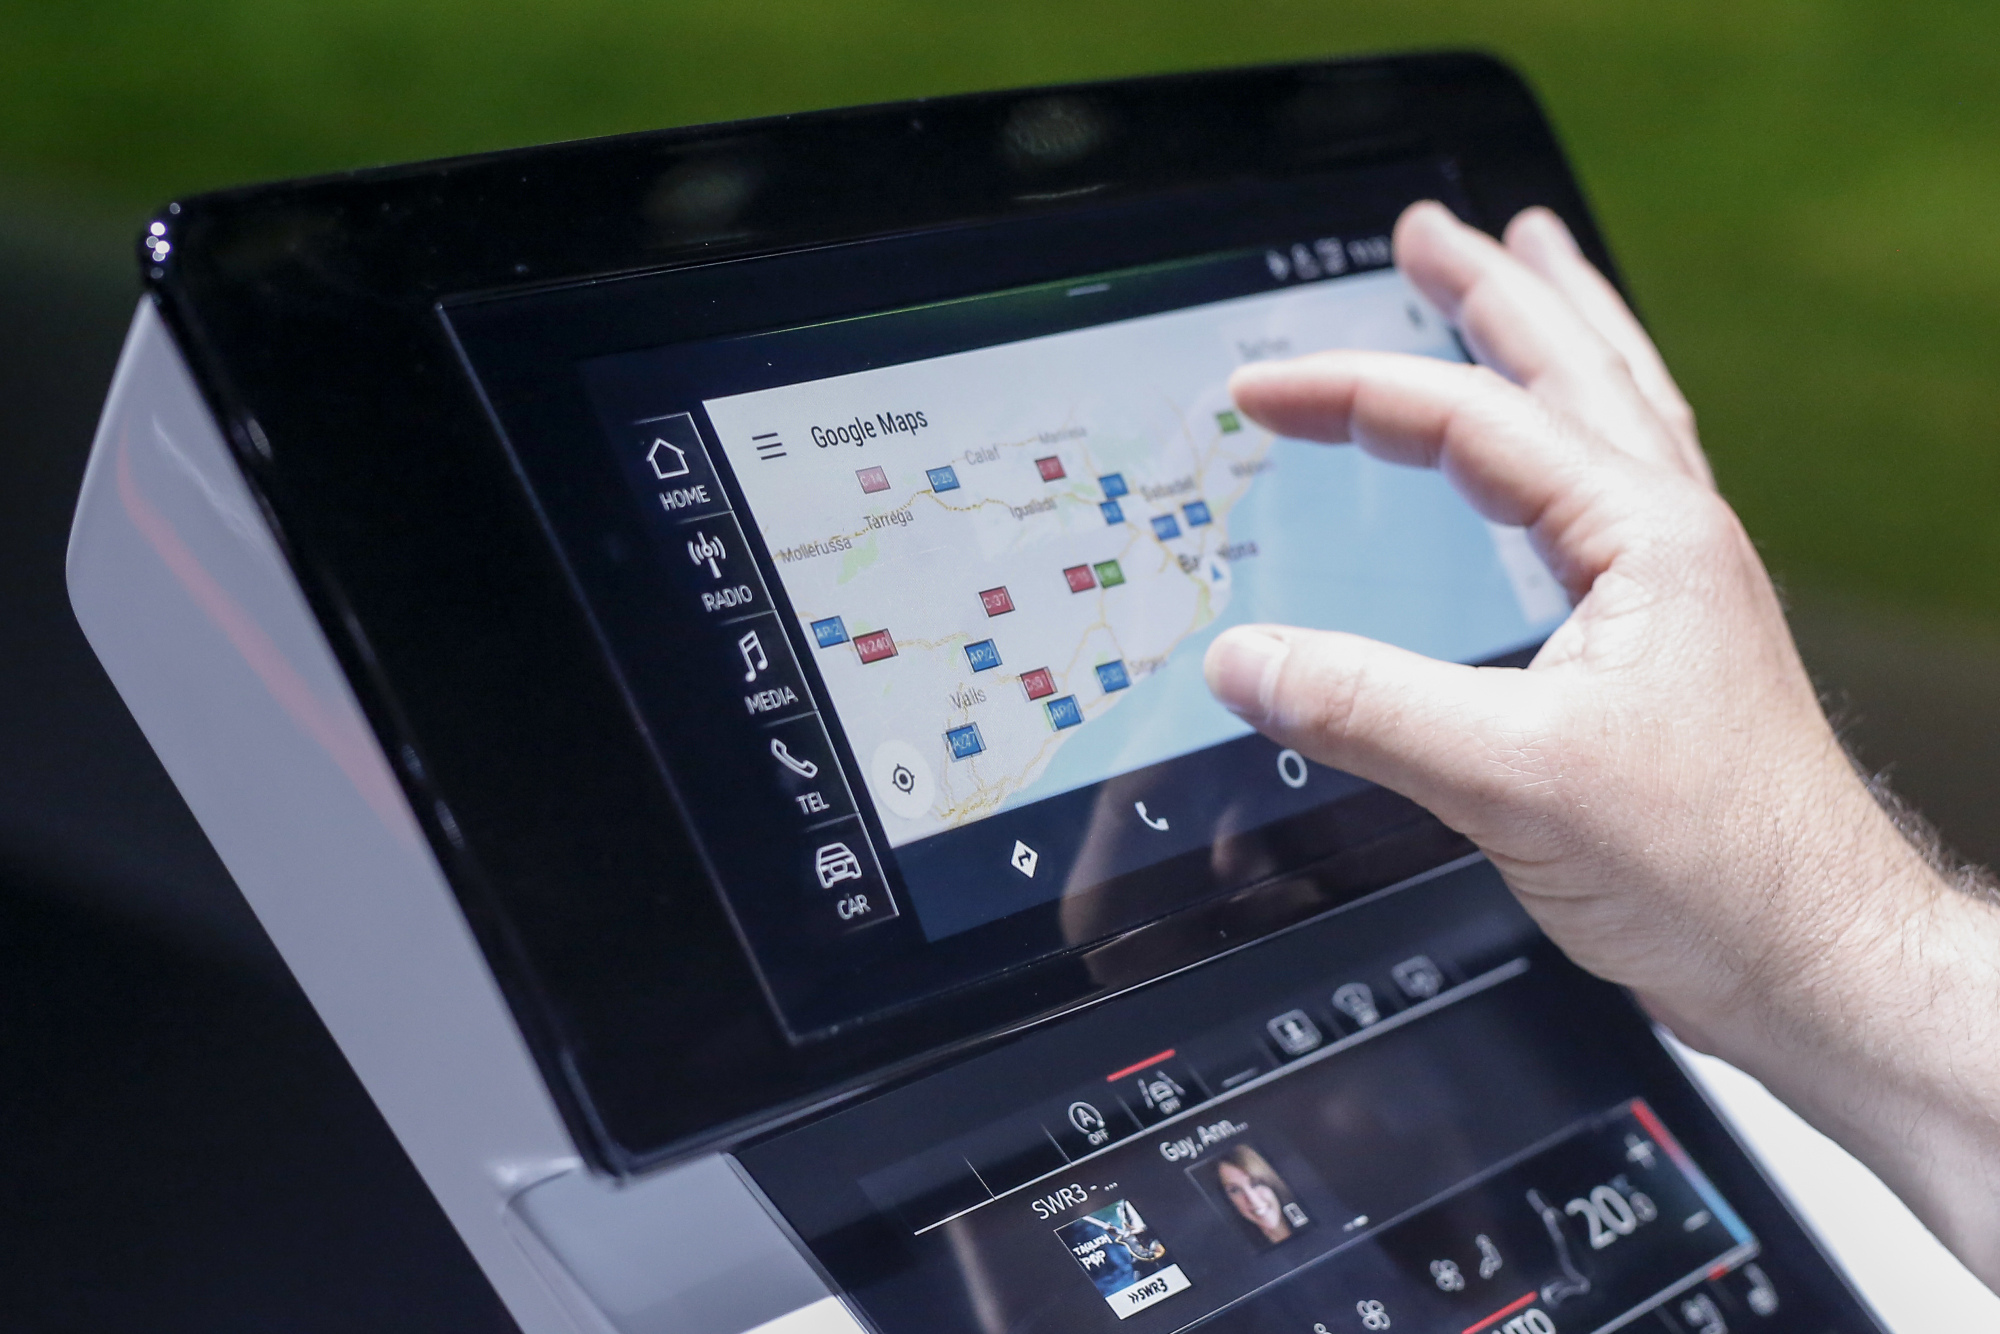 bloomberg.com - David Welch - Renault-Nissan Teams With Google and Lets Android Into the Dash